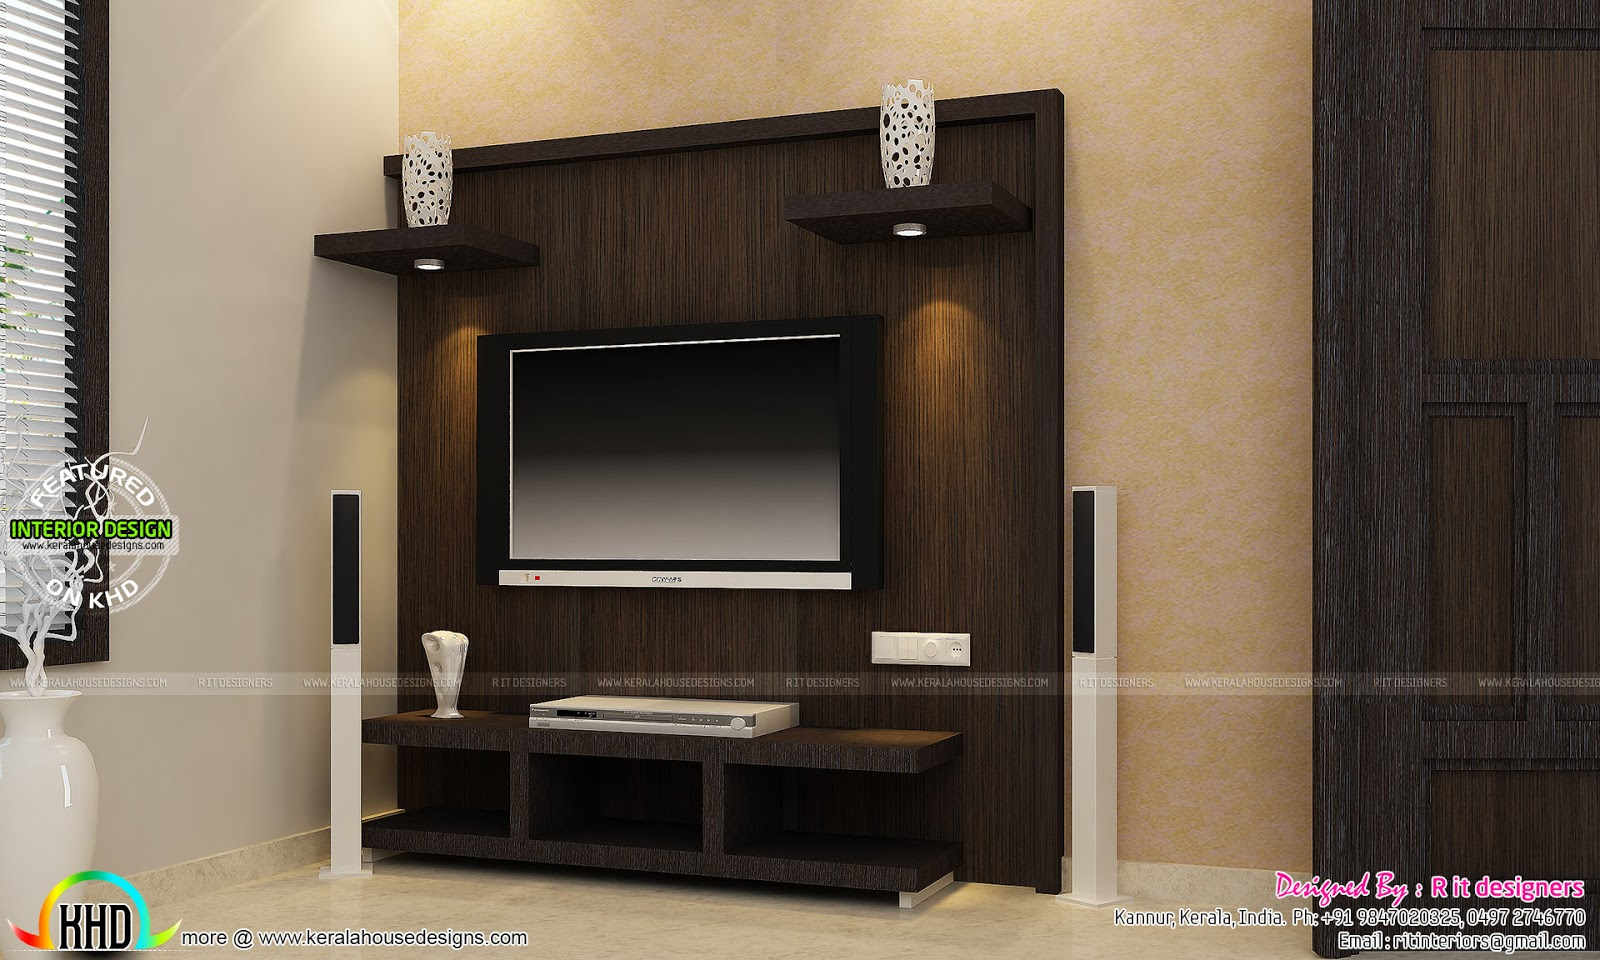 Tv unit furniture dining and bedroom interiors kerala Sample interior design for small house